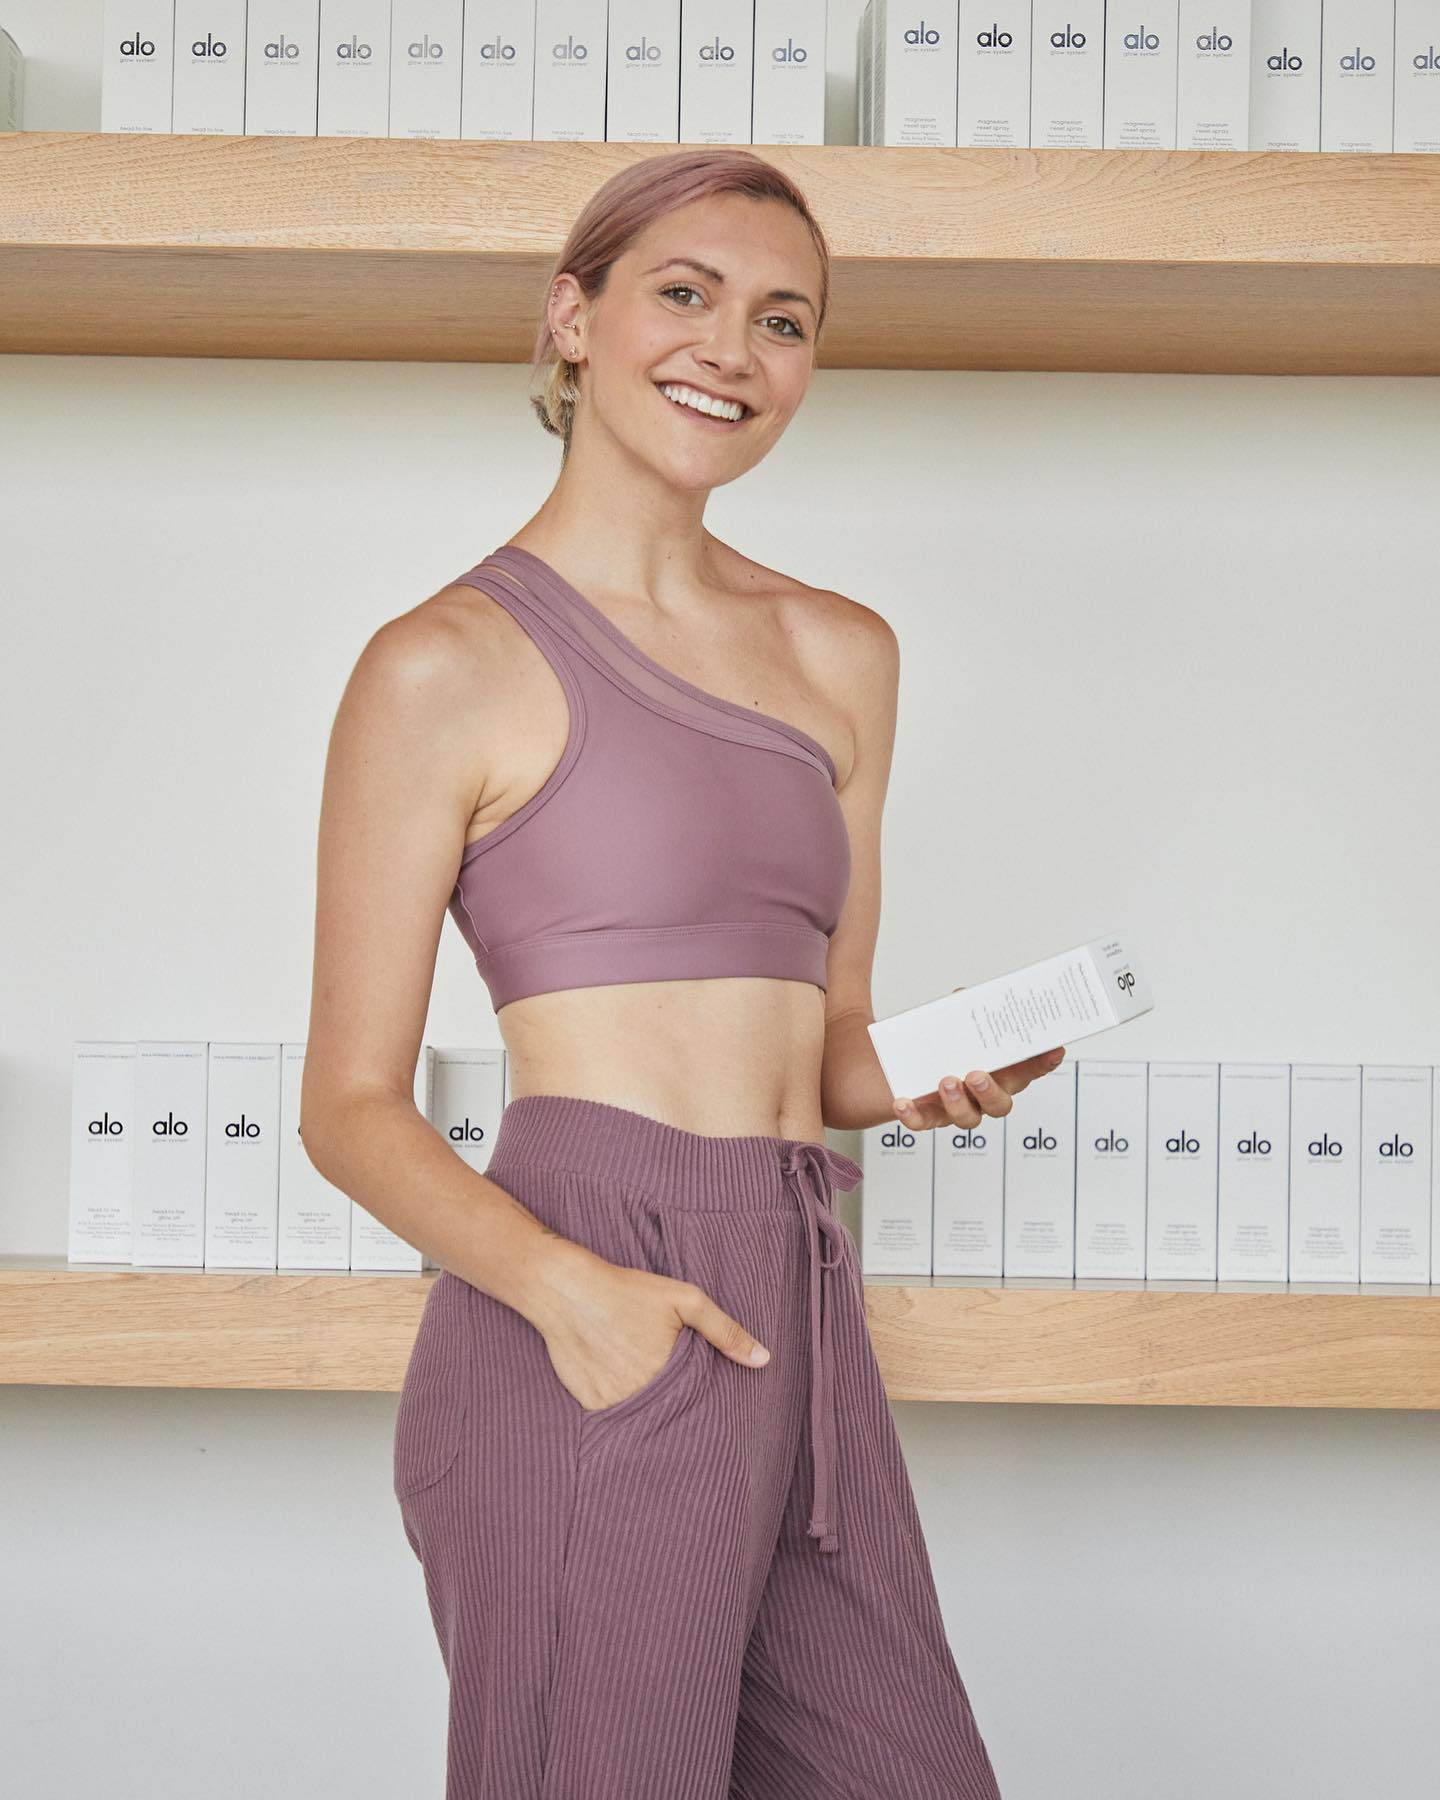 @alysonstoner wearing the Airlift Excite One-Shoulder Bra and the Muse Sweatpants both in Woodrose while checking out the Alo Glow System Products at Alo House.